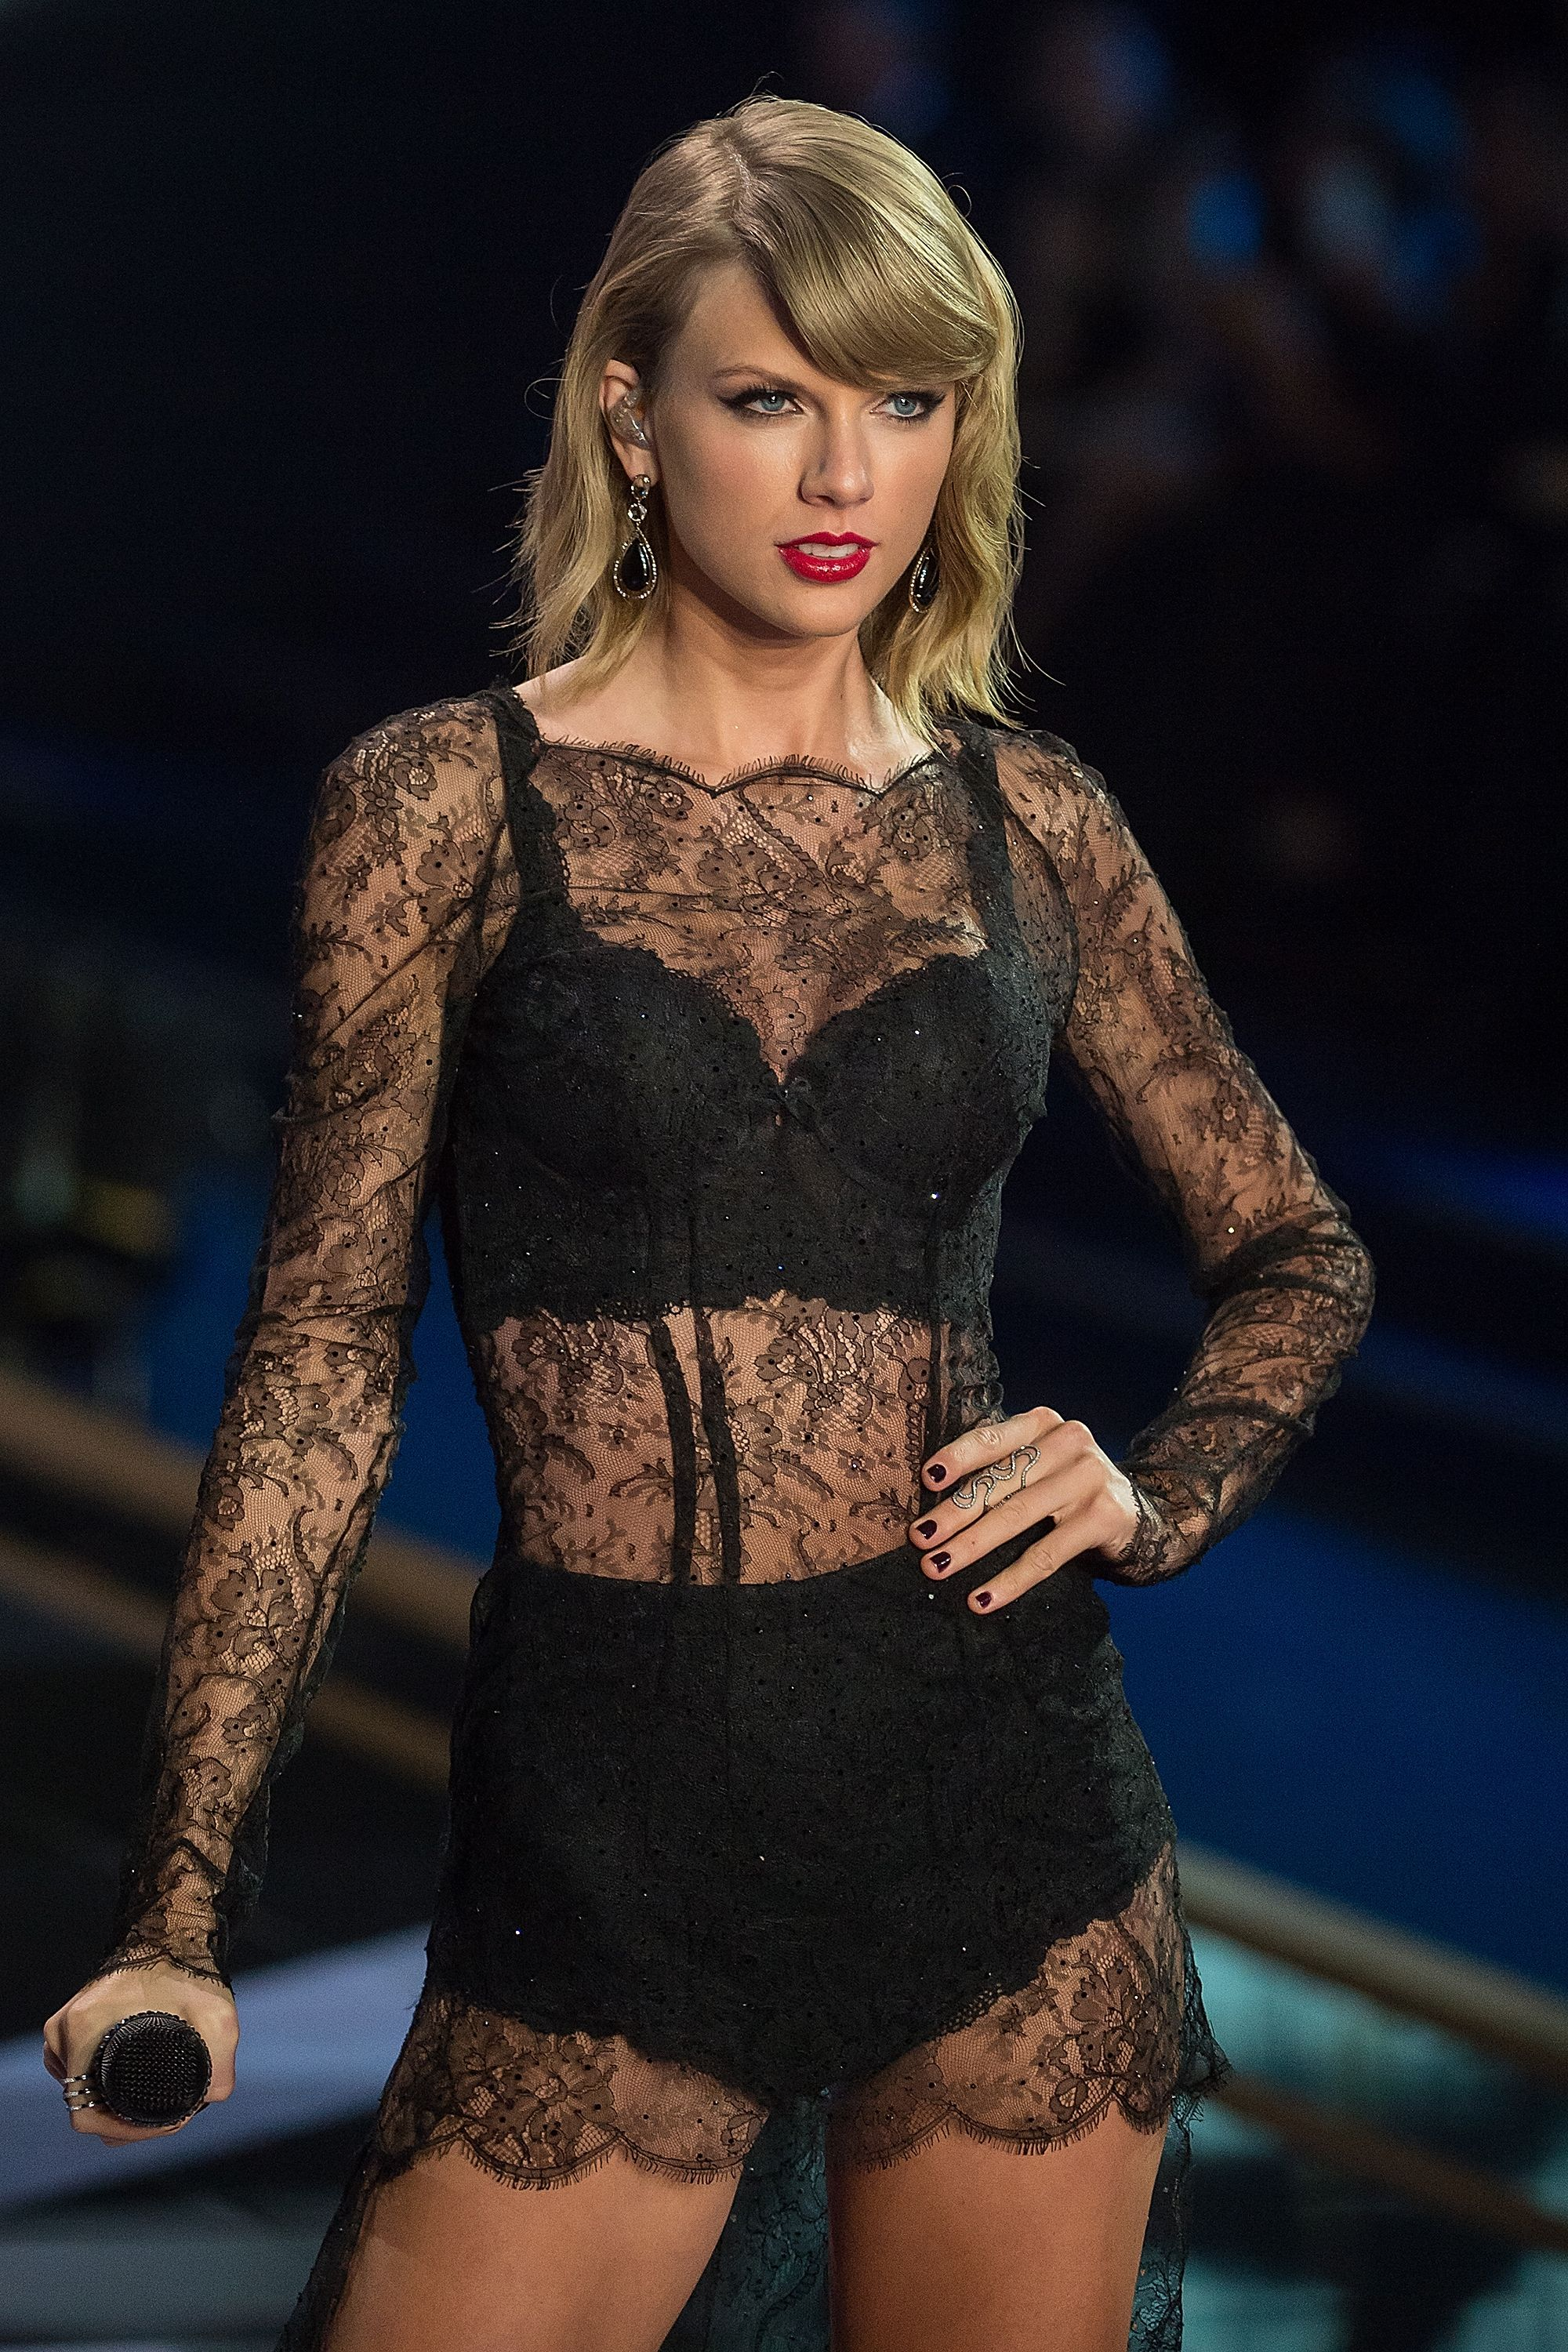 Taylor Swift Modeling Lingerie new picture